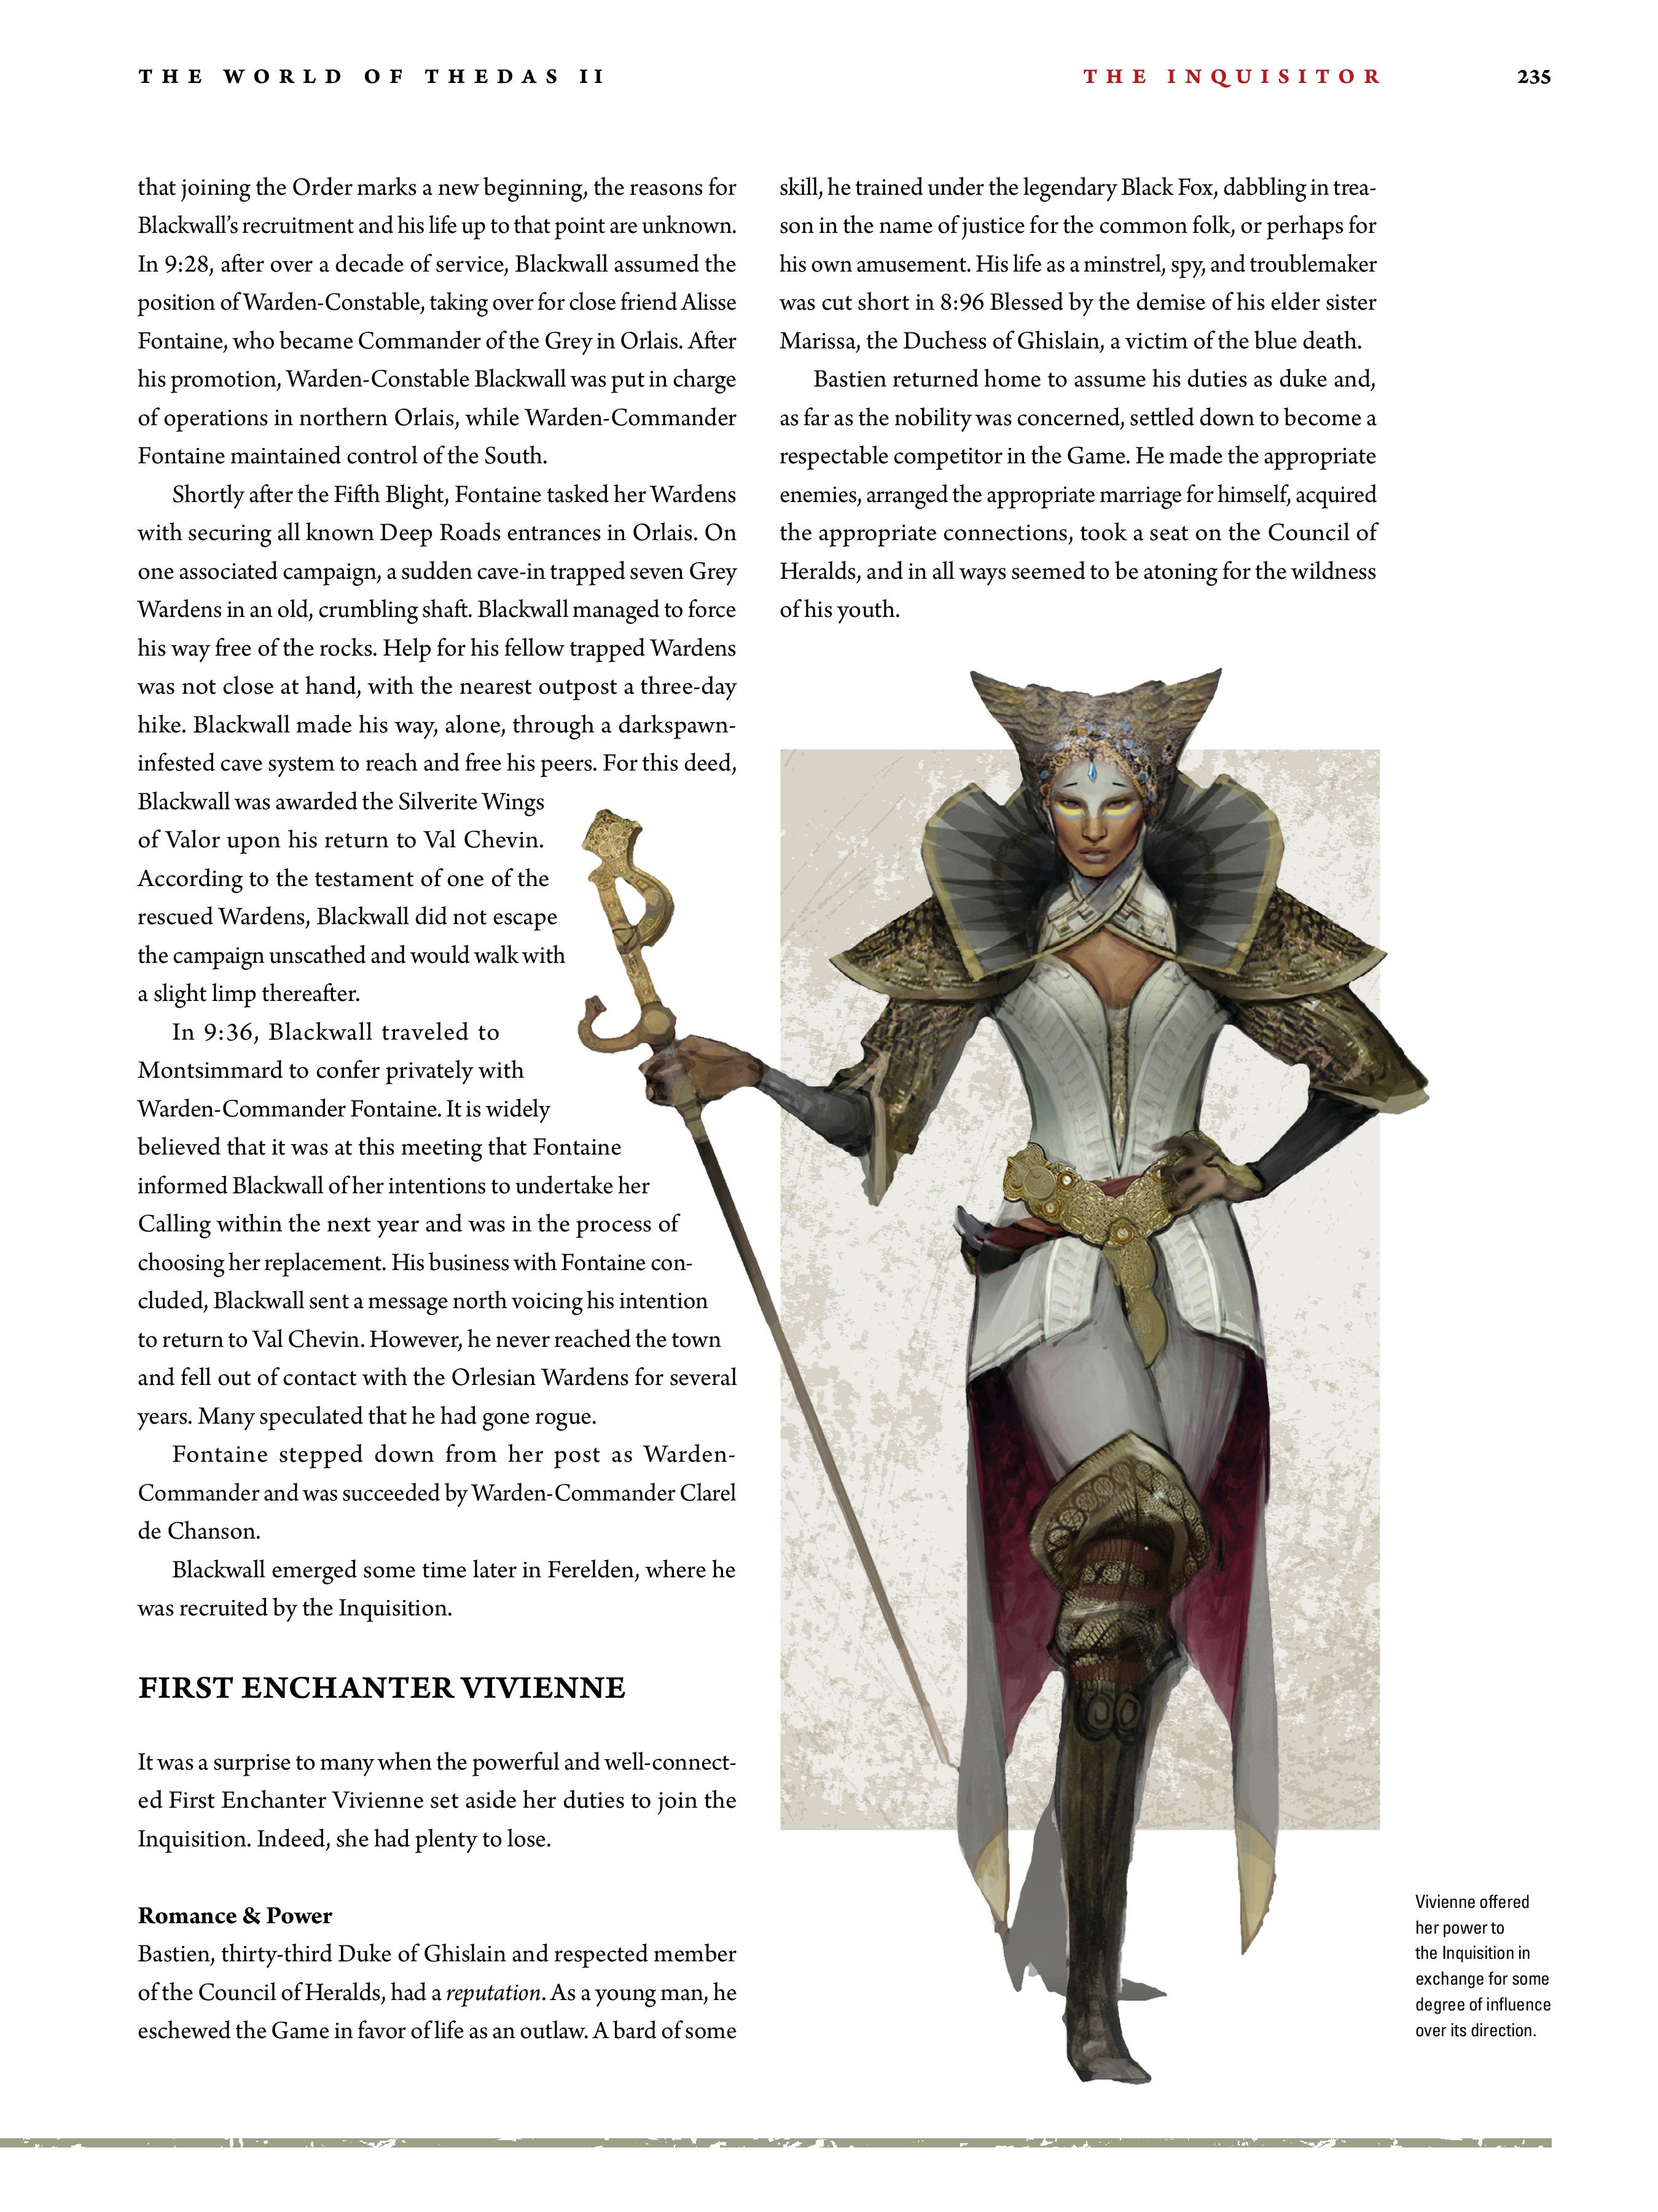 Read online Dragon Age: The World of Thedas comic -  Issue # TPB 2 - 230